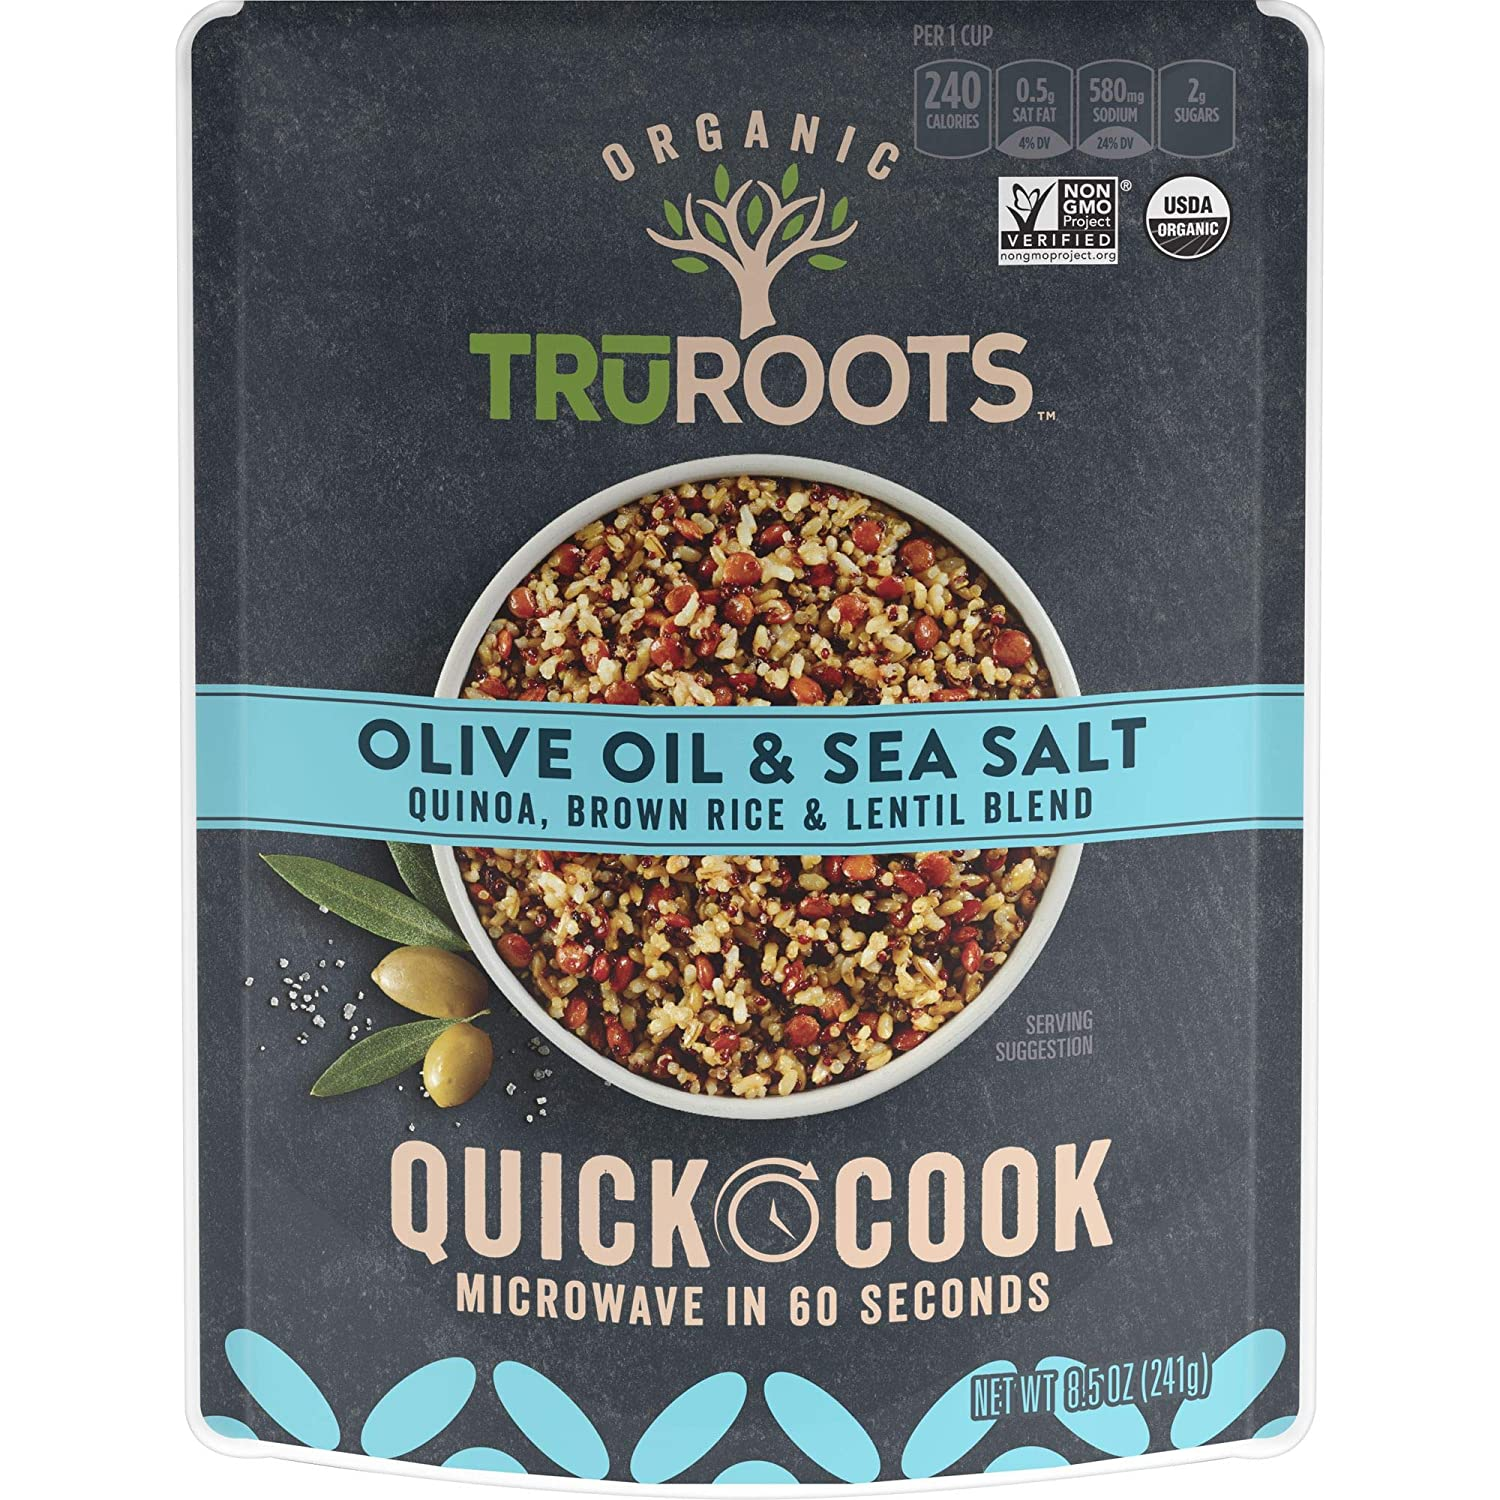 TruRoots Organic Quick Cook Olive Oil and Sea Salt Quinoa, Brown Rice and Lentil Blend, 8.5 Ounces (Pack of 8), Ready to Eat in 60 Seconds, Certified USDA Organic, Non-GMO Project Verified